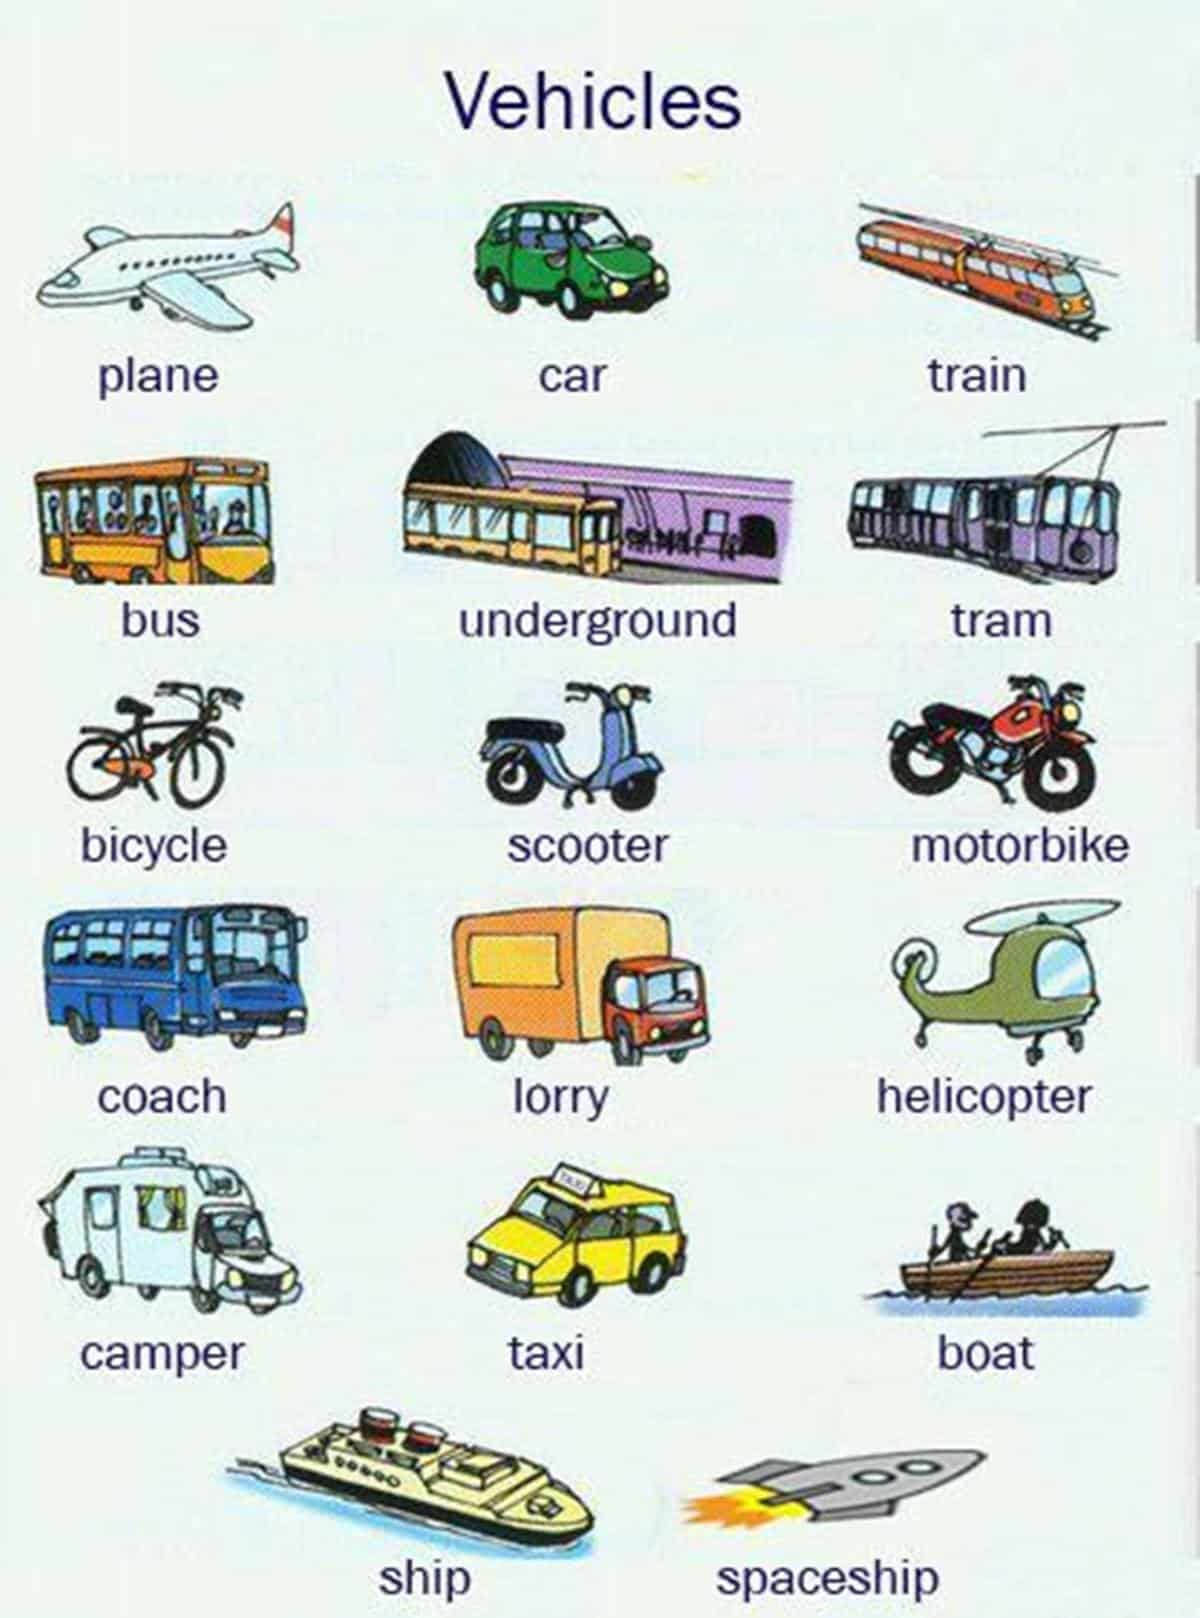 Street Vehicles and Transportation Vocabulary in English 16